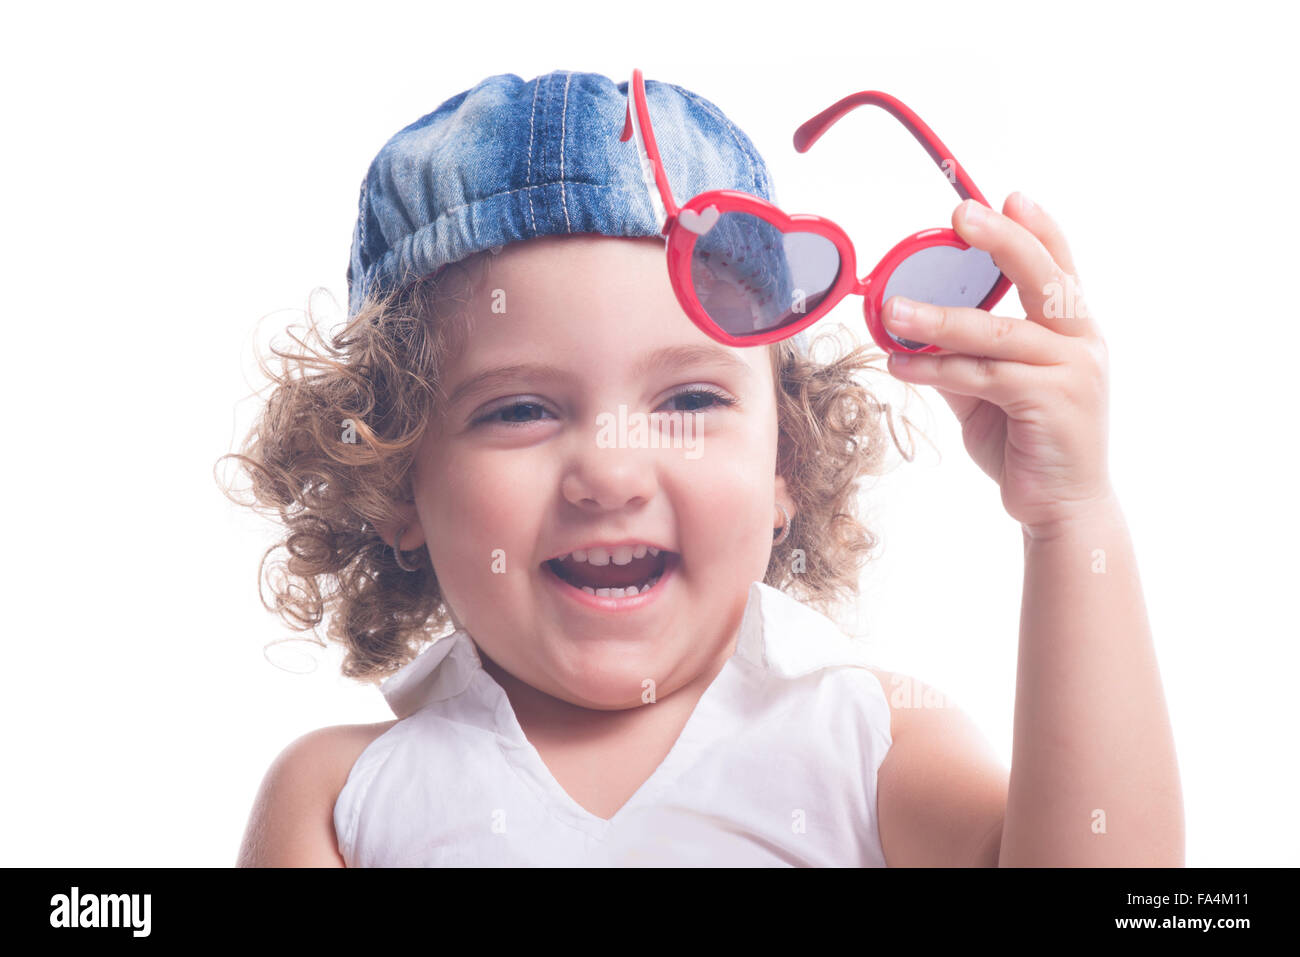 Isolated smiling female child with red sun glasses and blue hat - Stock  Image 96051895d738